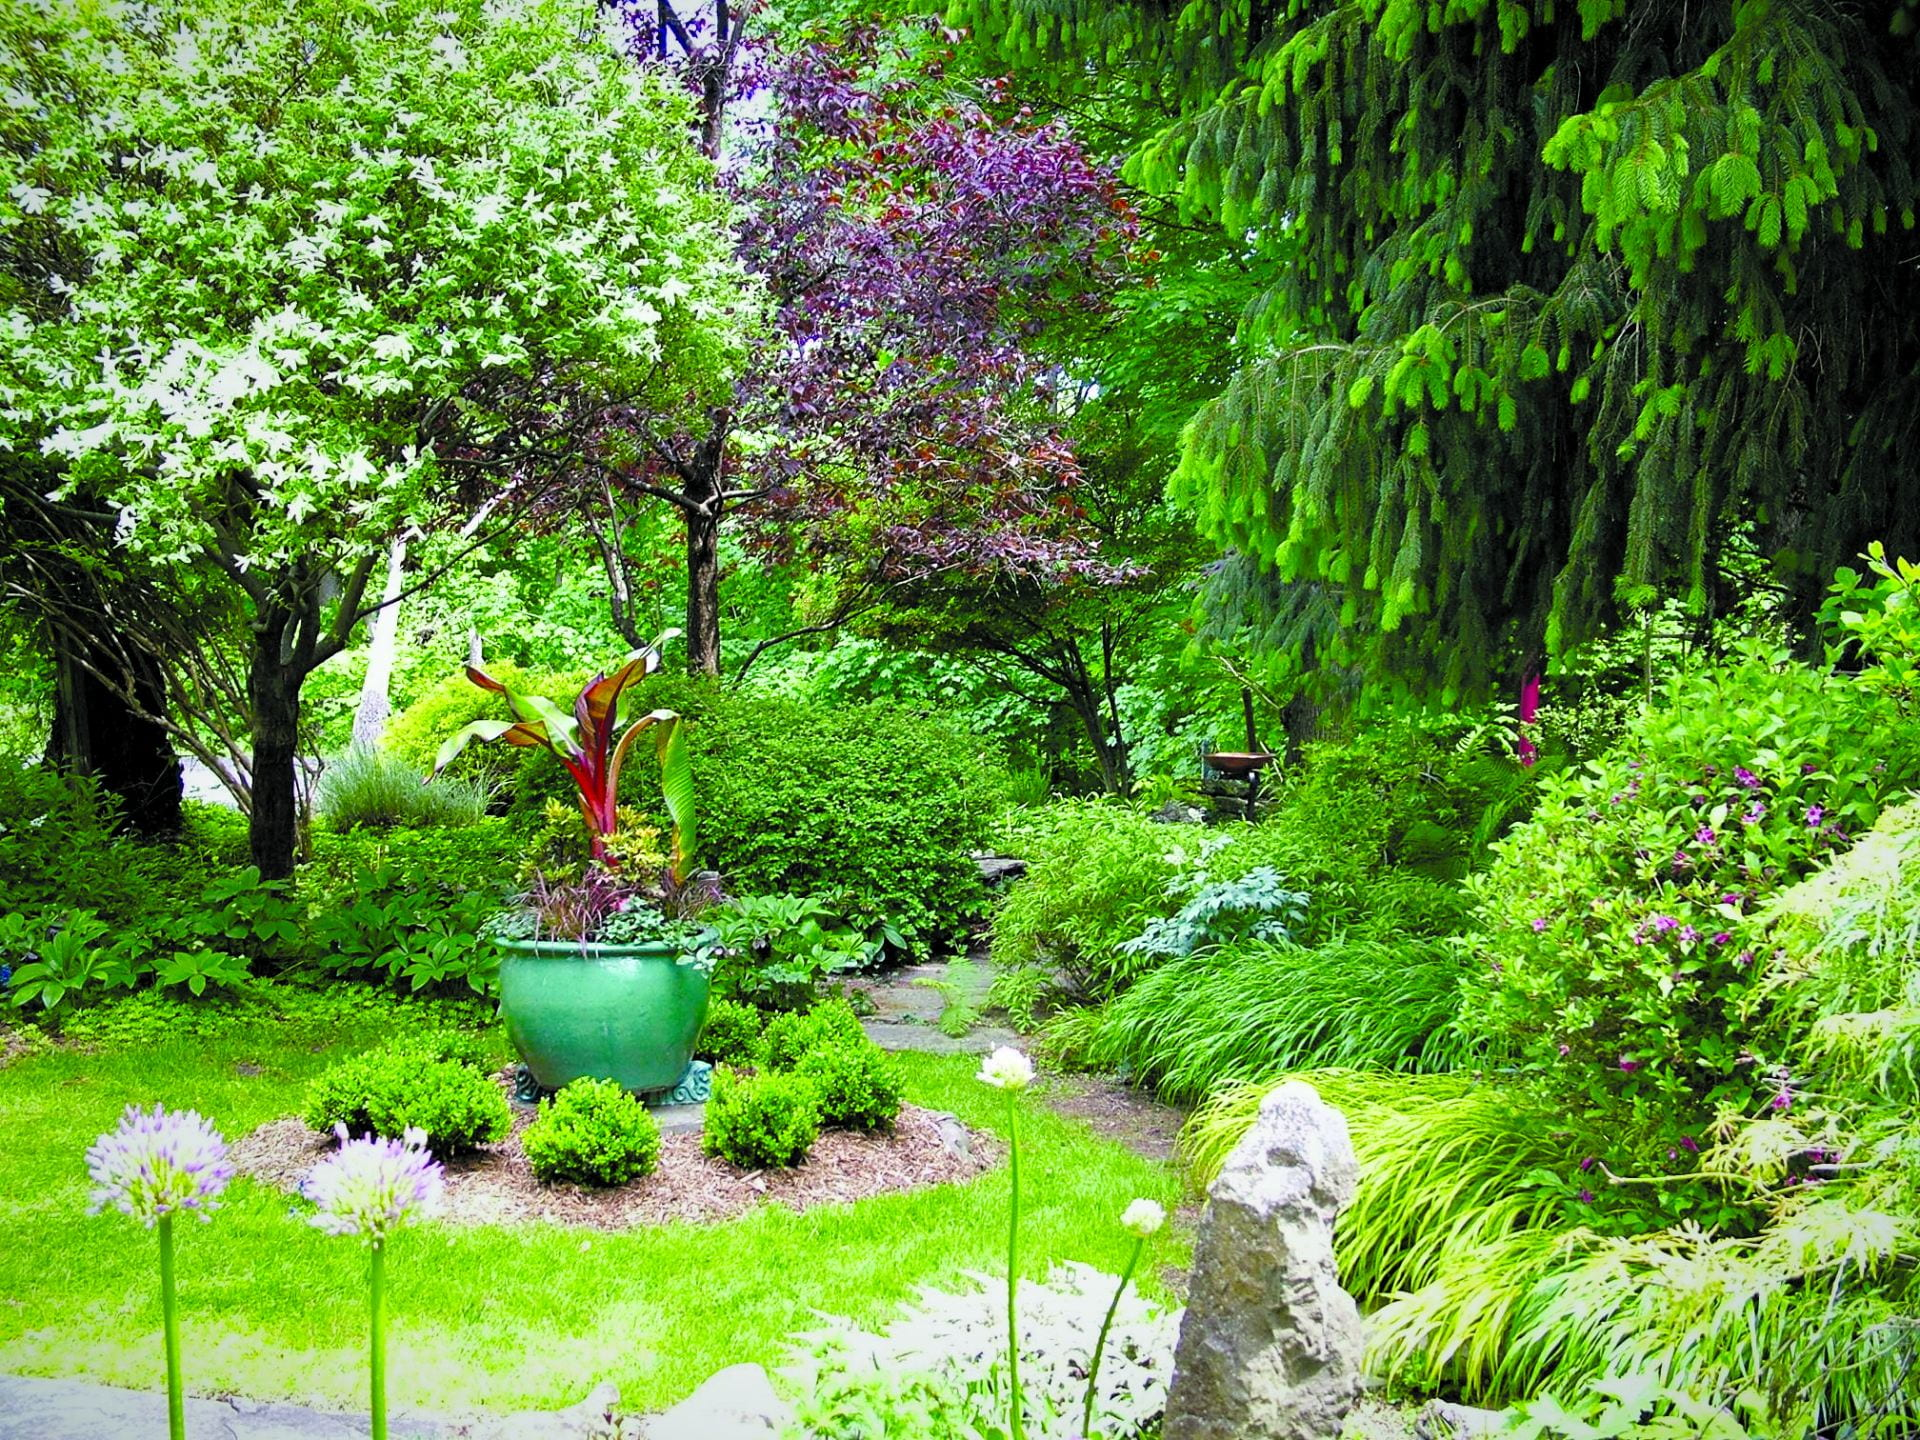 A beautifully green garden with trees in the background and a small grassy area with a large planter in the foreground